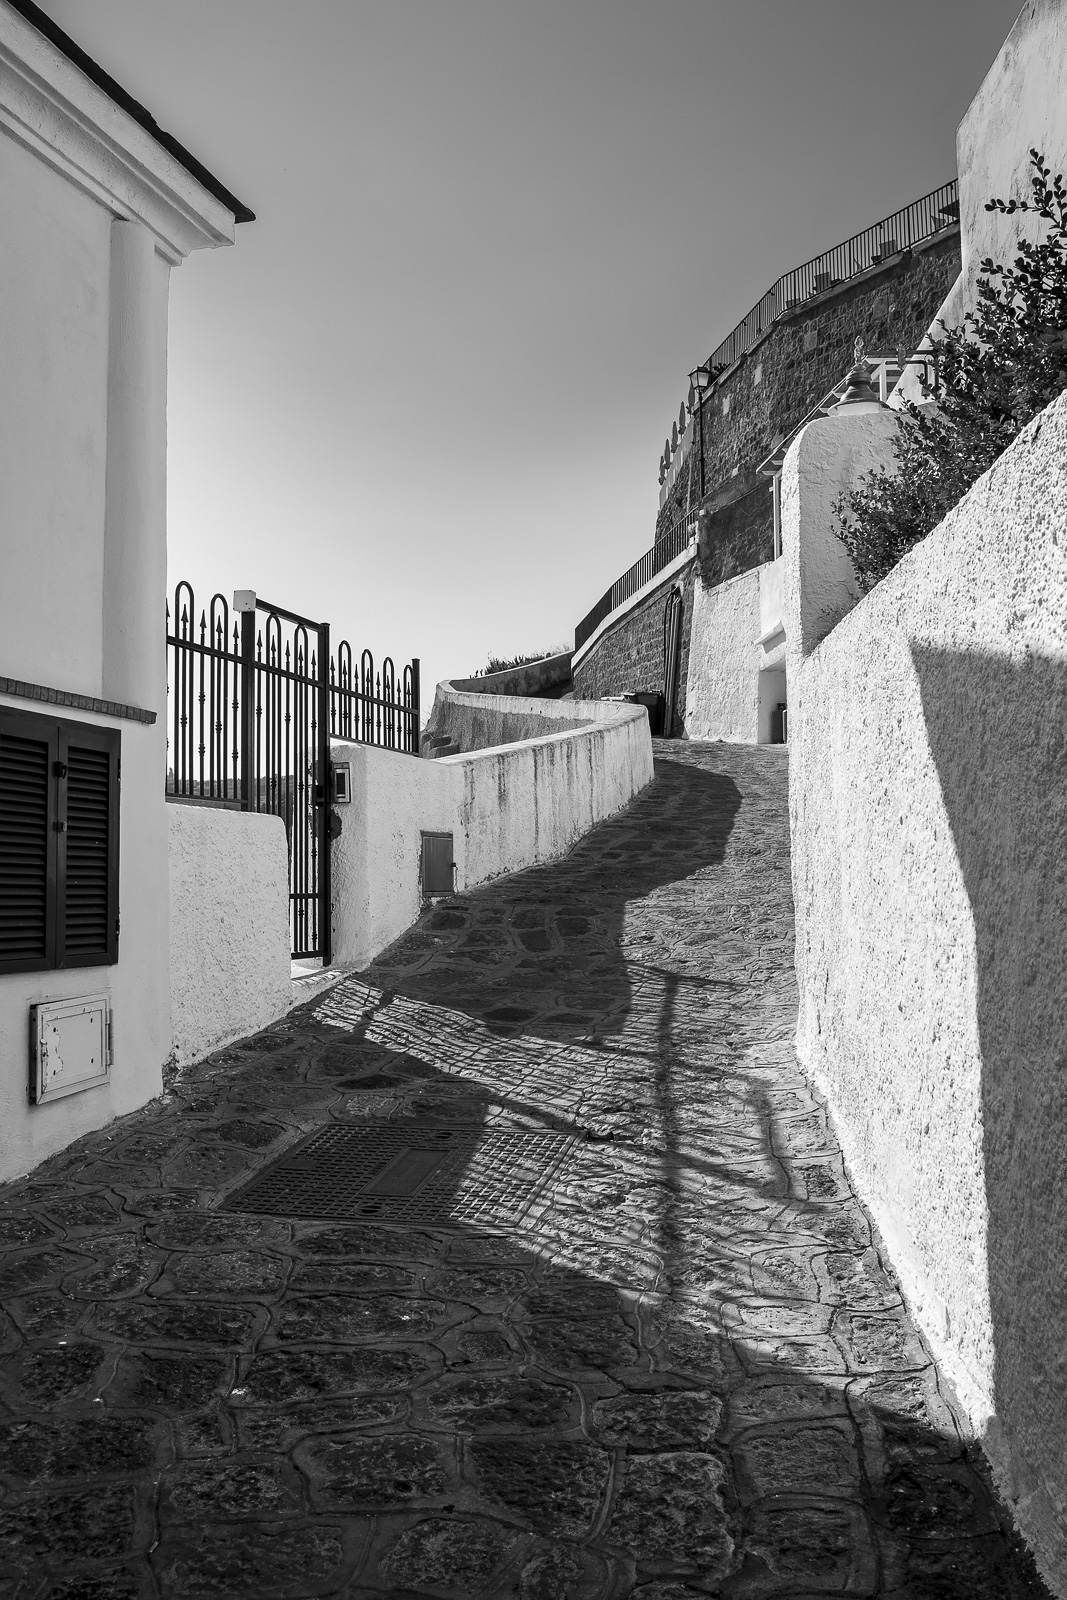 Narrow flag stone street meandering up hillside with whitewashed buildings on either side Provinciale Succhivo Sant'Angelo, Sant'Angelo Italy black and white monochrome rustic street portrait composition © P. Maton 2018 eyeteeth.net